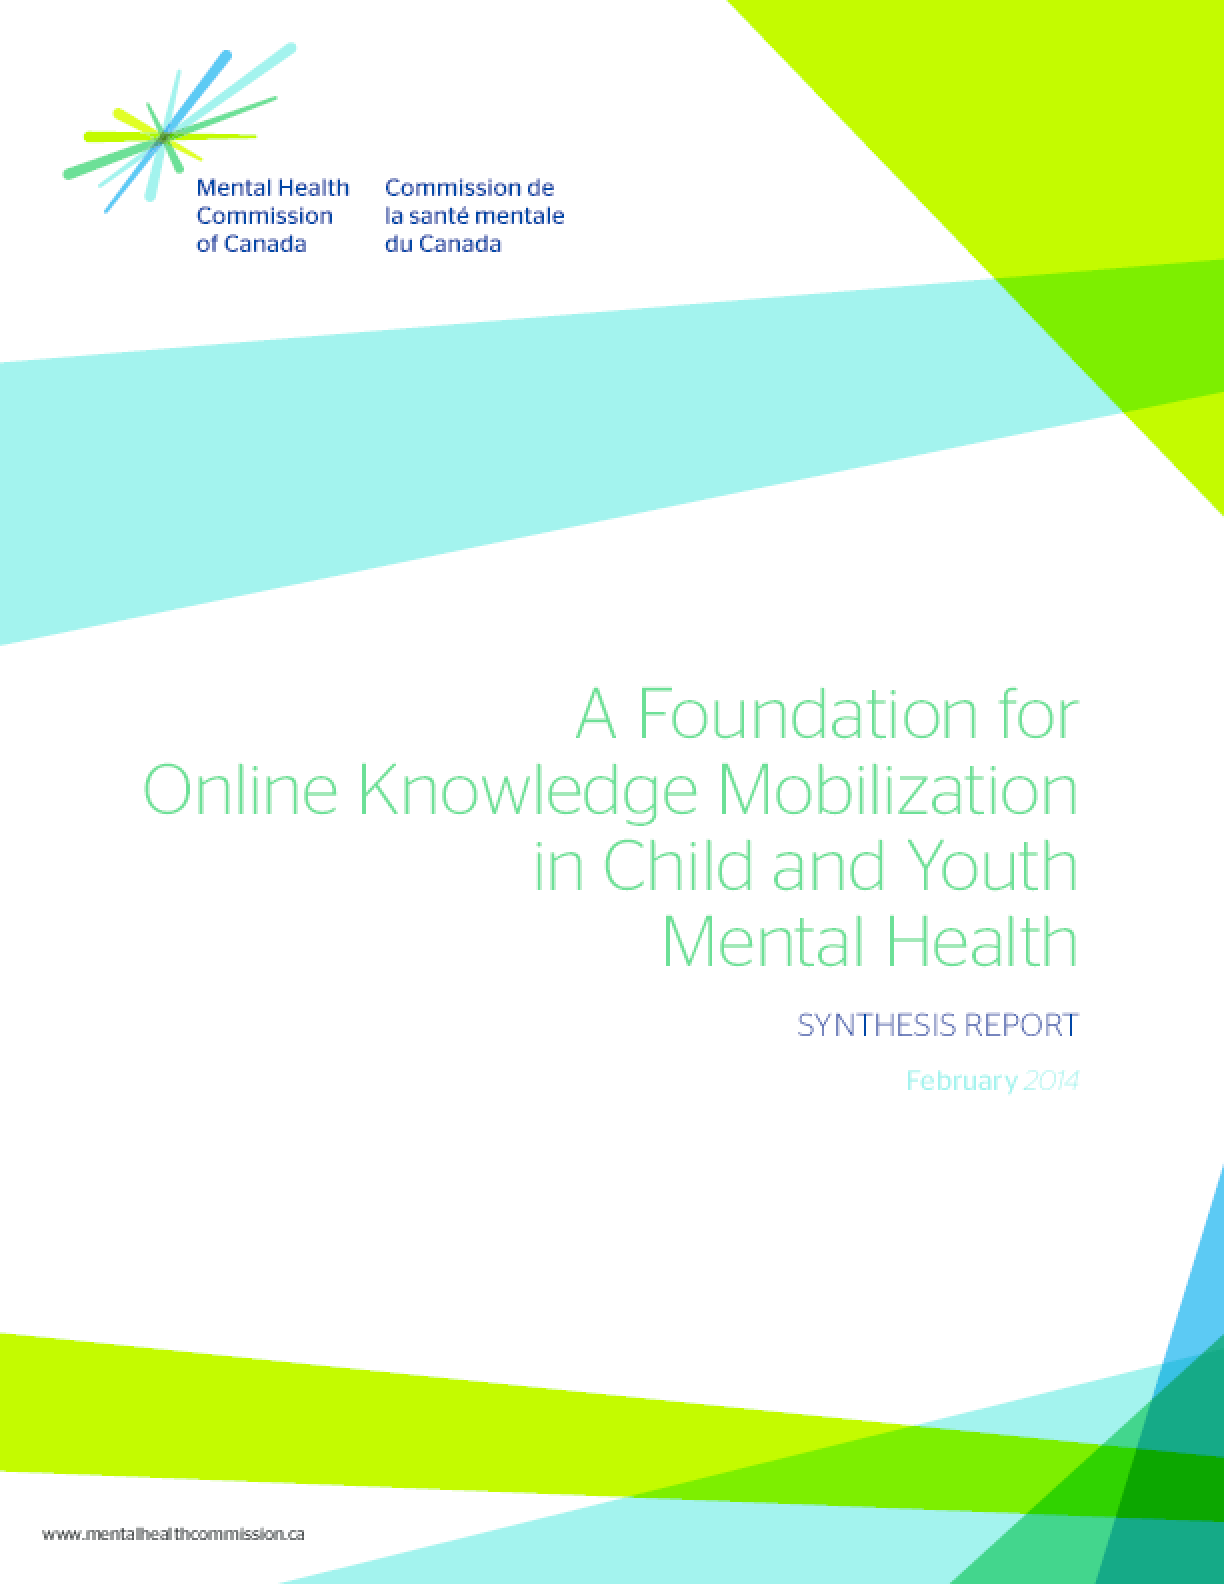 A Foundation for Online Knowledge Mobilization in Child and Youth Mental Health: Synthesis Report